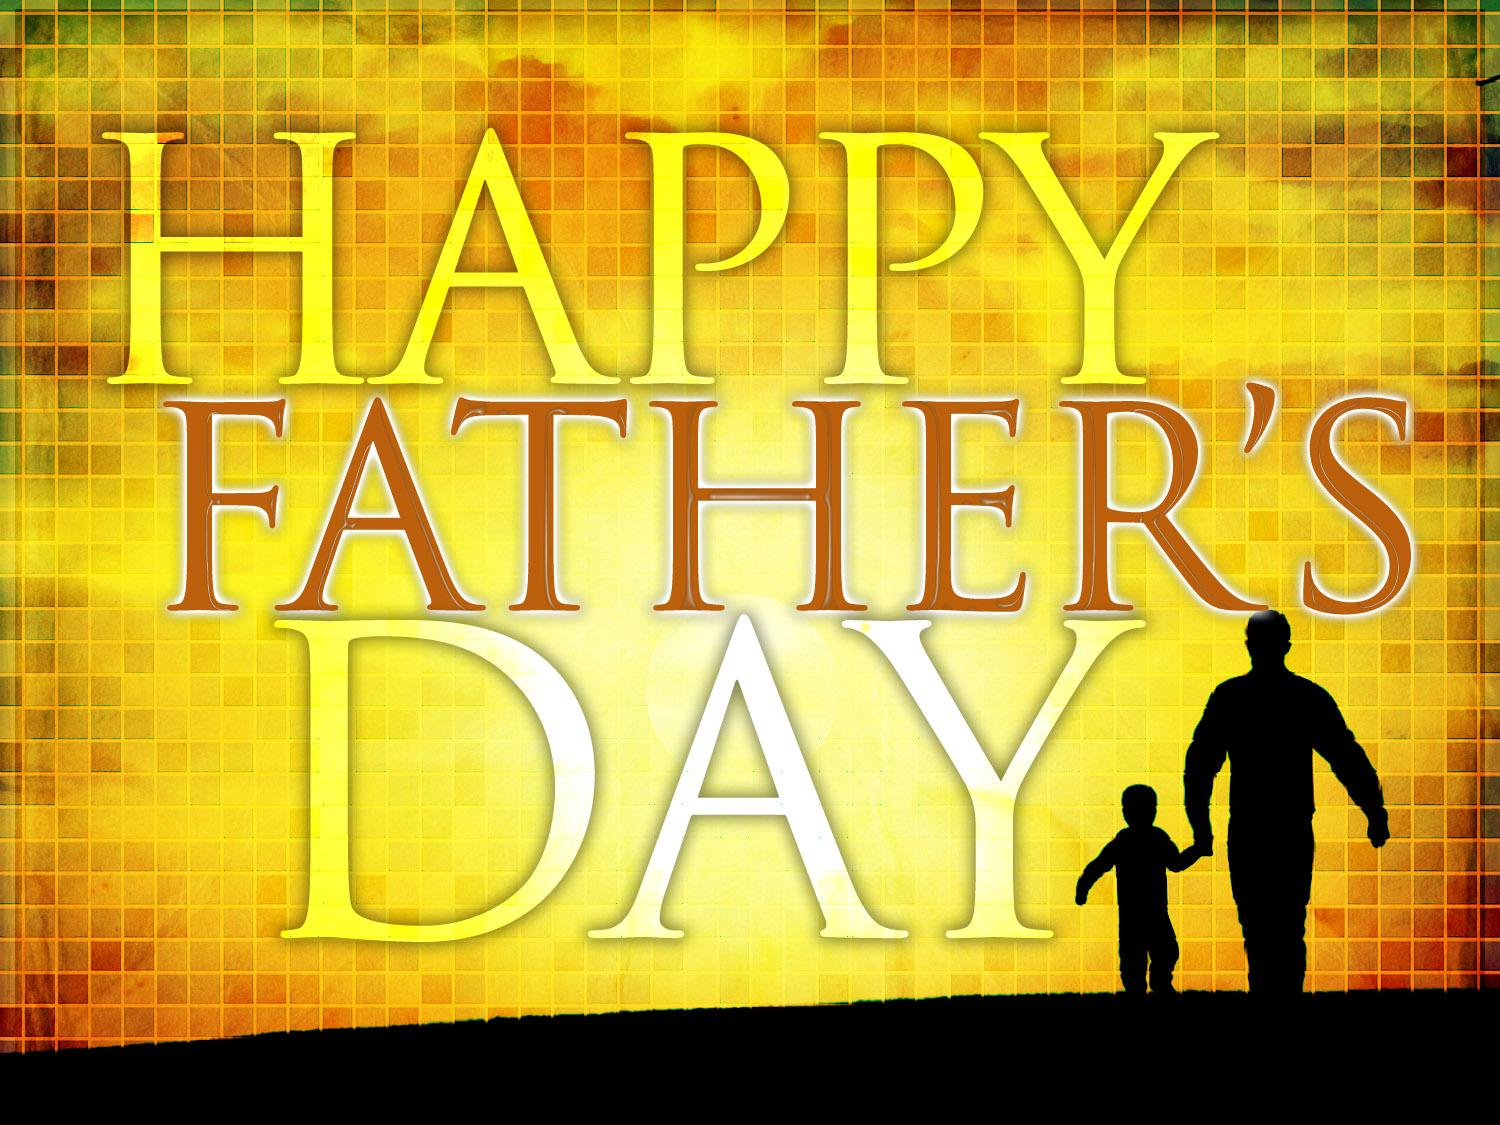 Happy Fathers Day Wallpapers Cell Phone ✓ Labzada Wallpapers